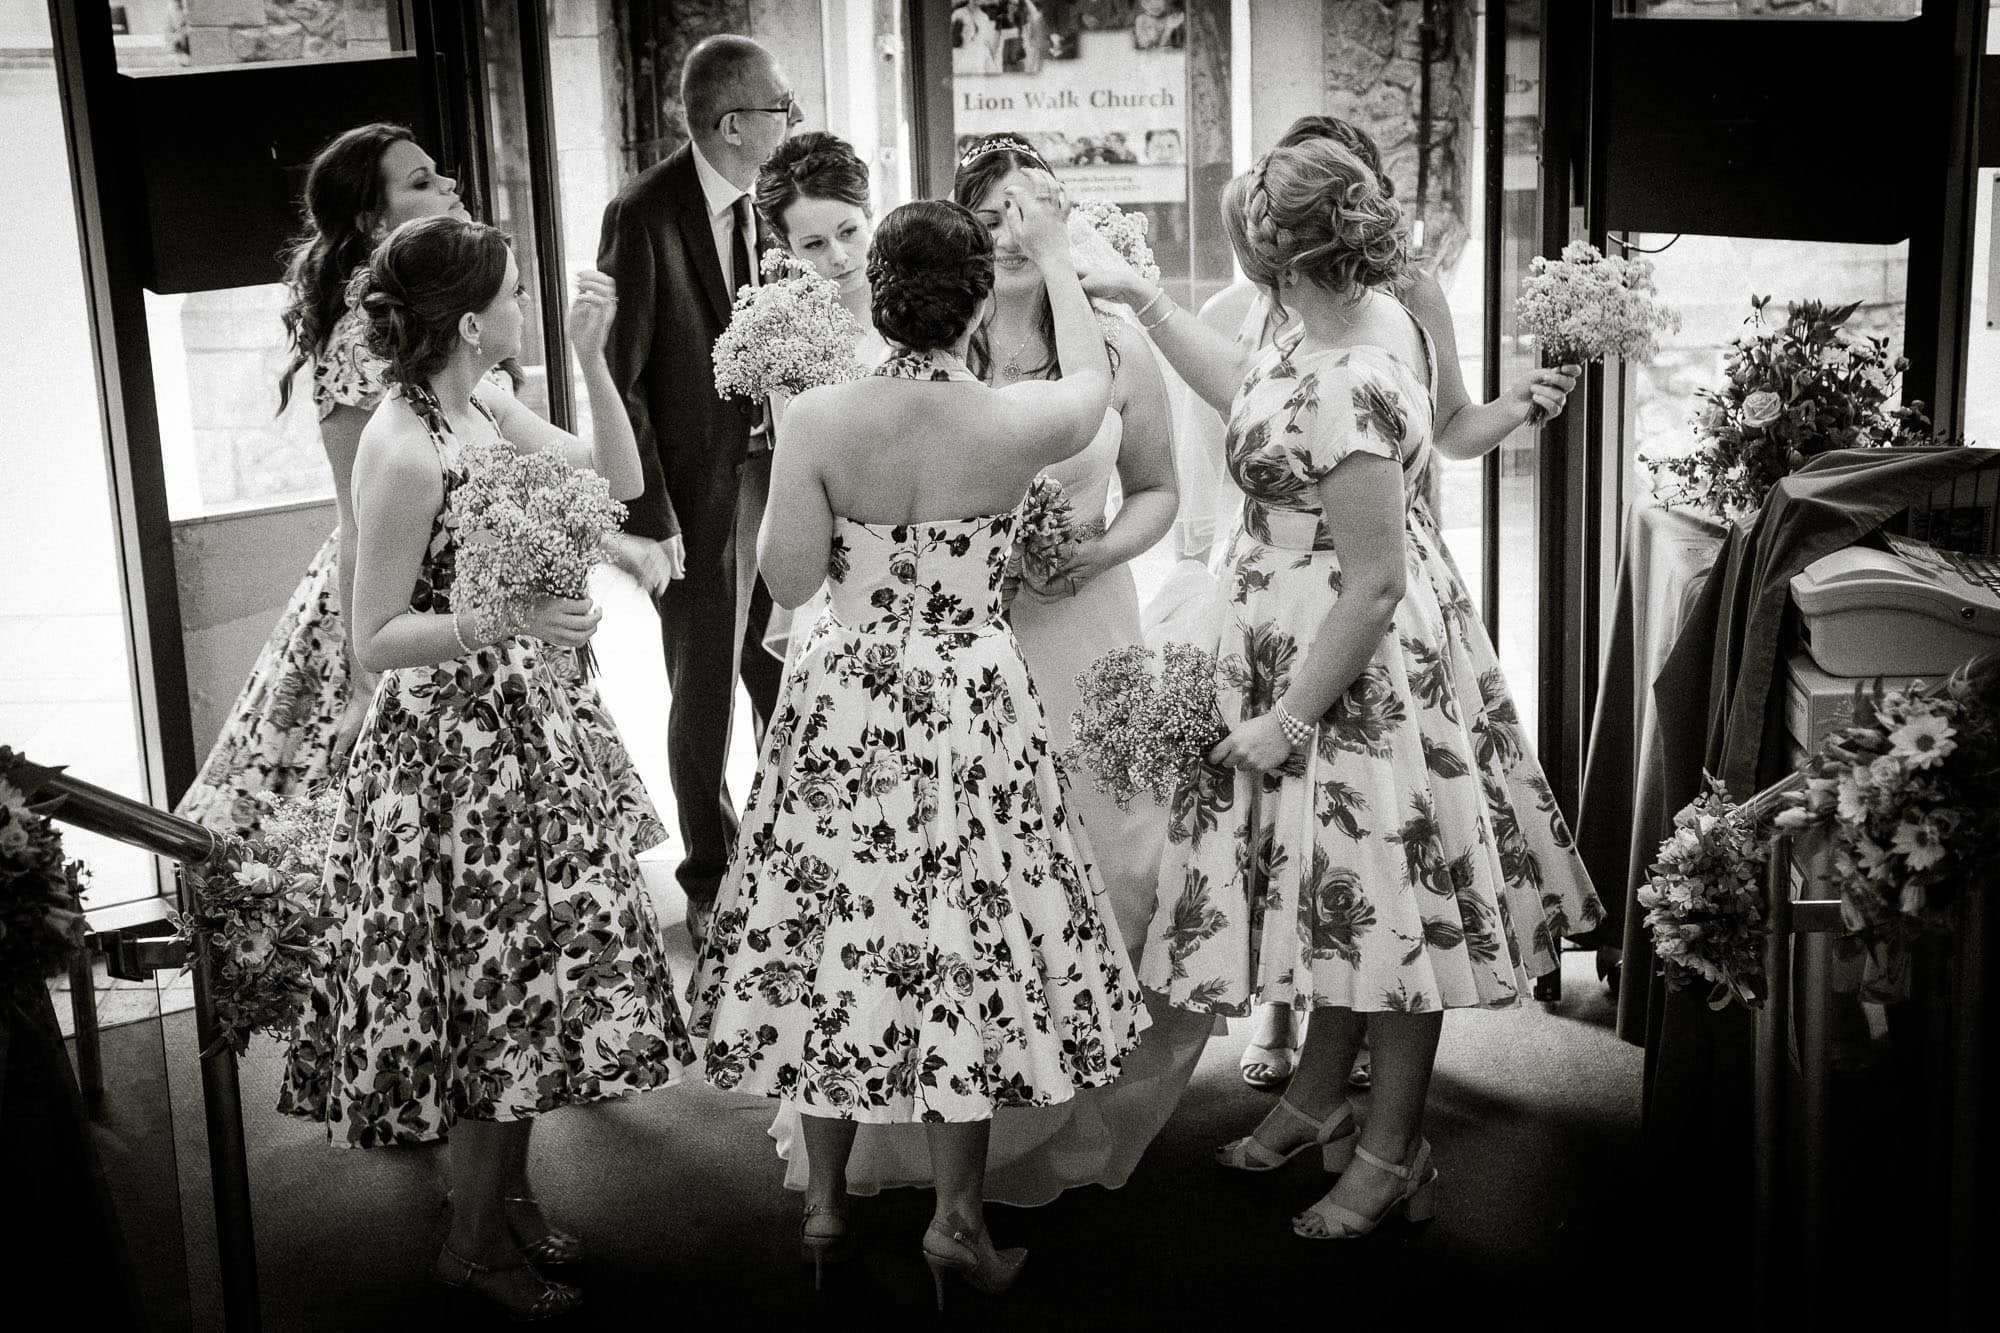 Bride and bridesmaids last minute adjustments, Red Lion Church, Colchester ,Essex.